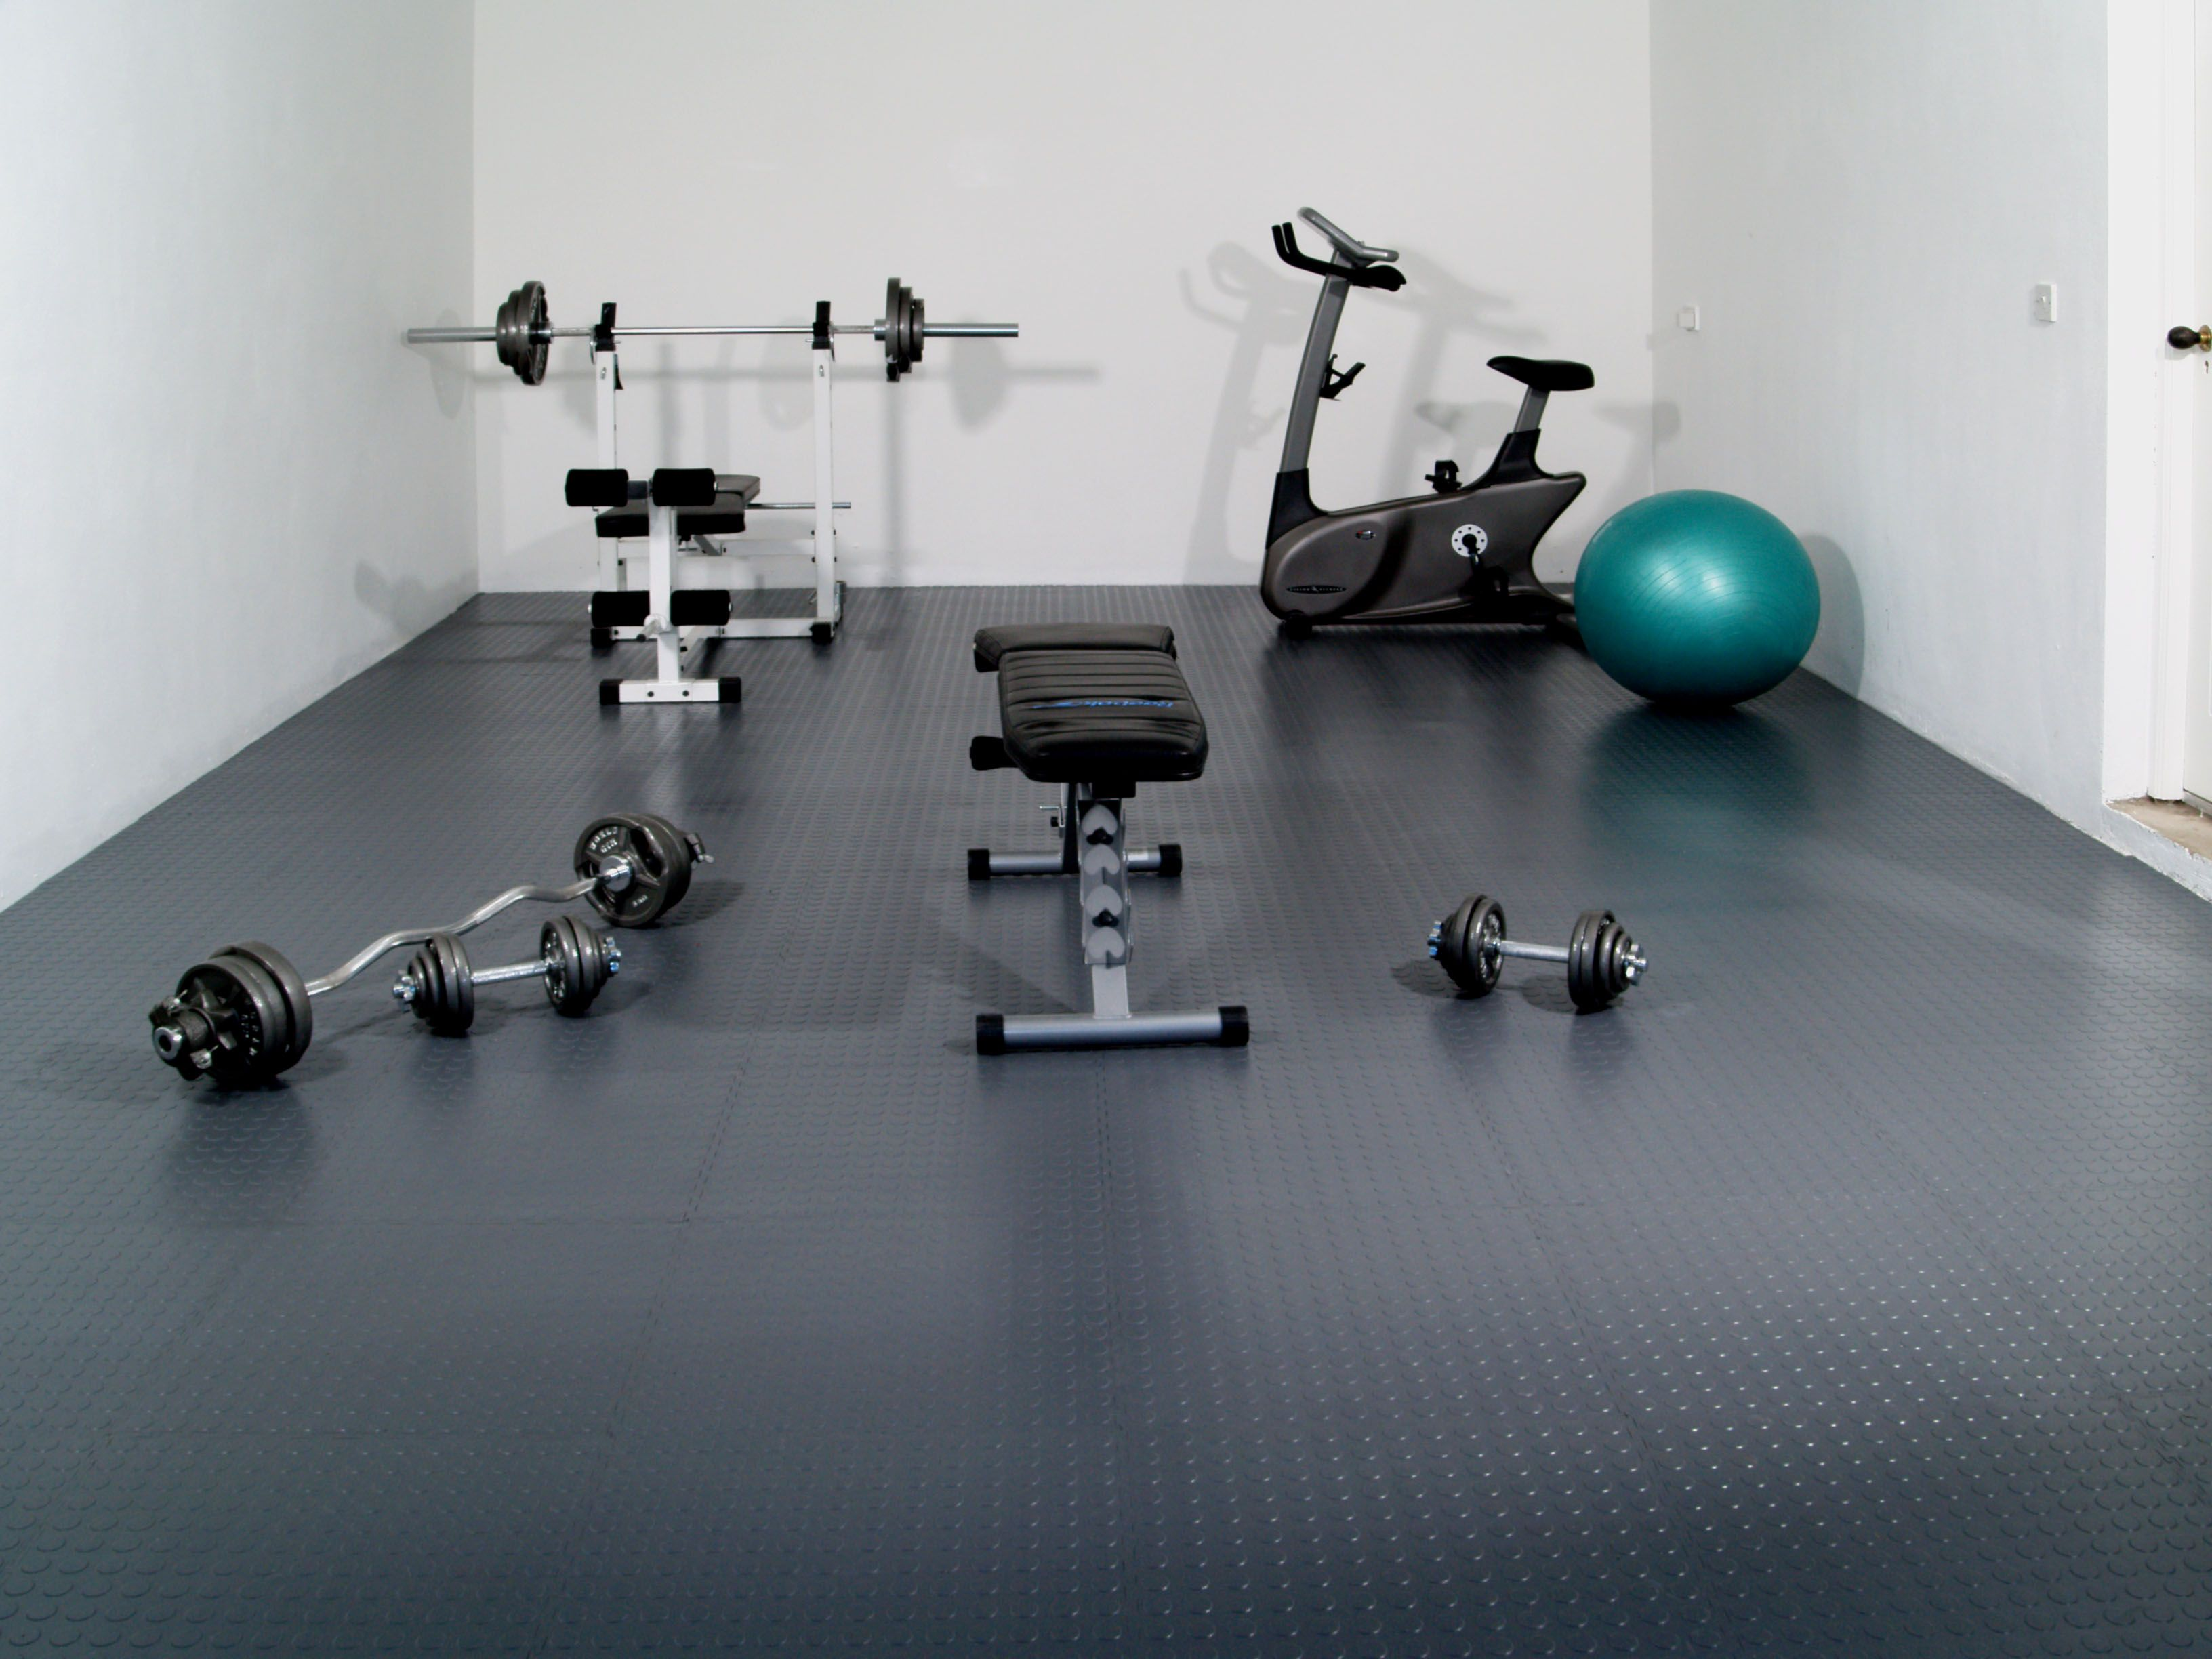 upscale inch show flooring virgin elegant of gym rubber textured floor luxury the ignite home tiles